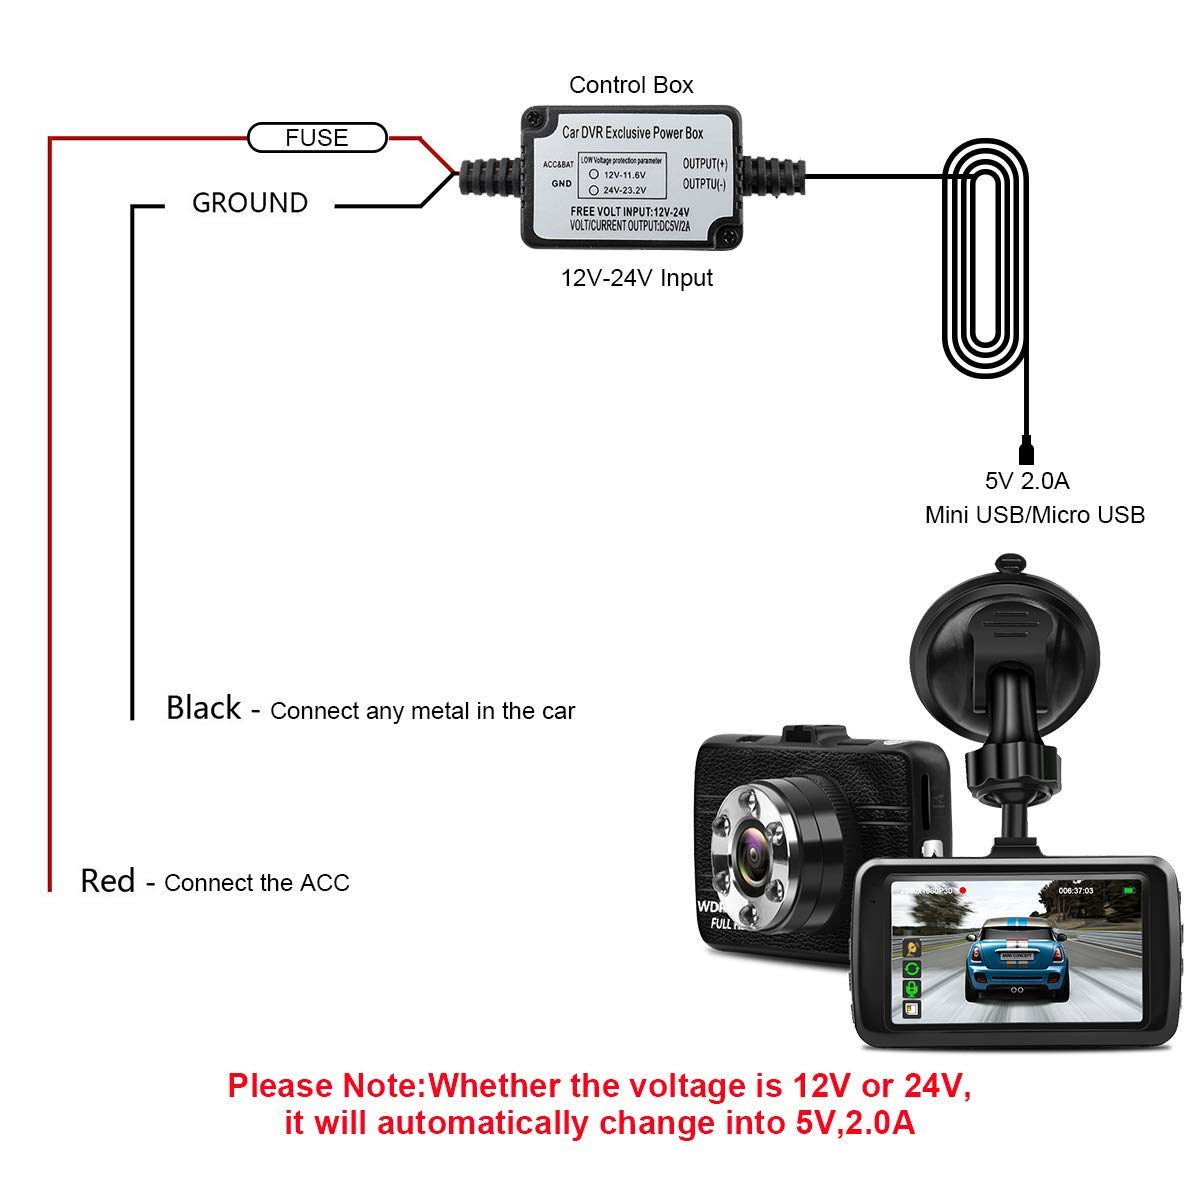 YaeCCC Mini USB Cable kit for GPS Tracker with Fuse Holder for Continuous Vehicle Tracking